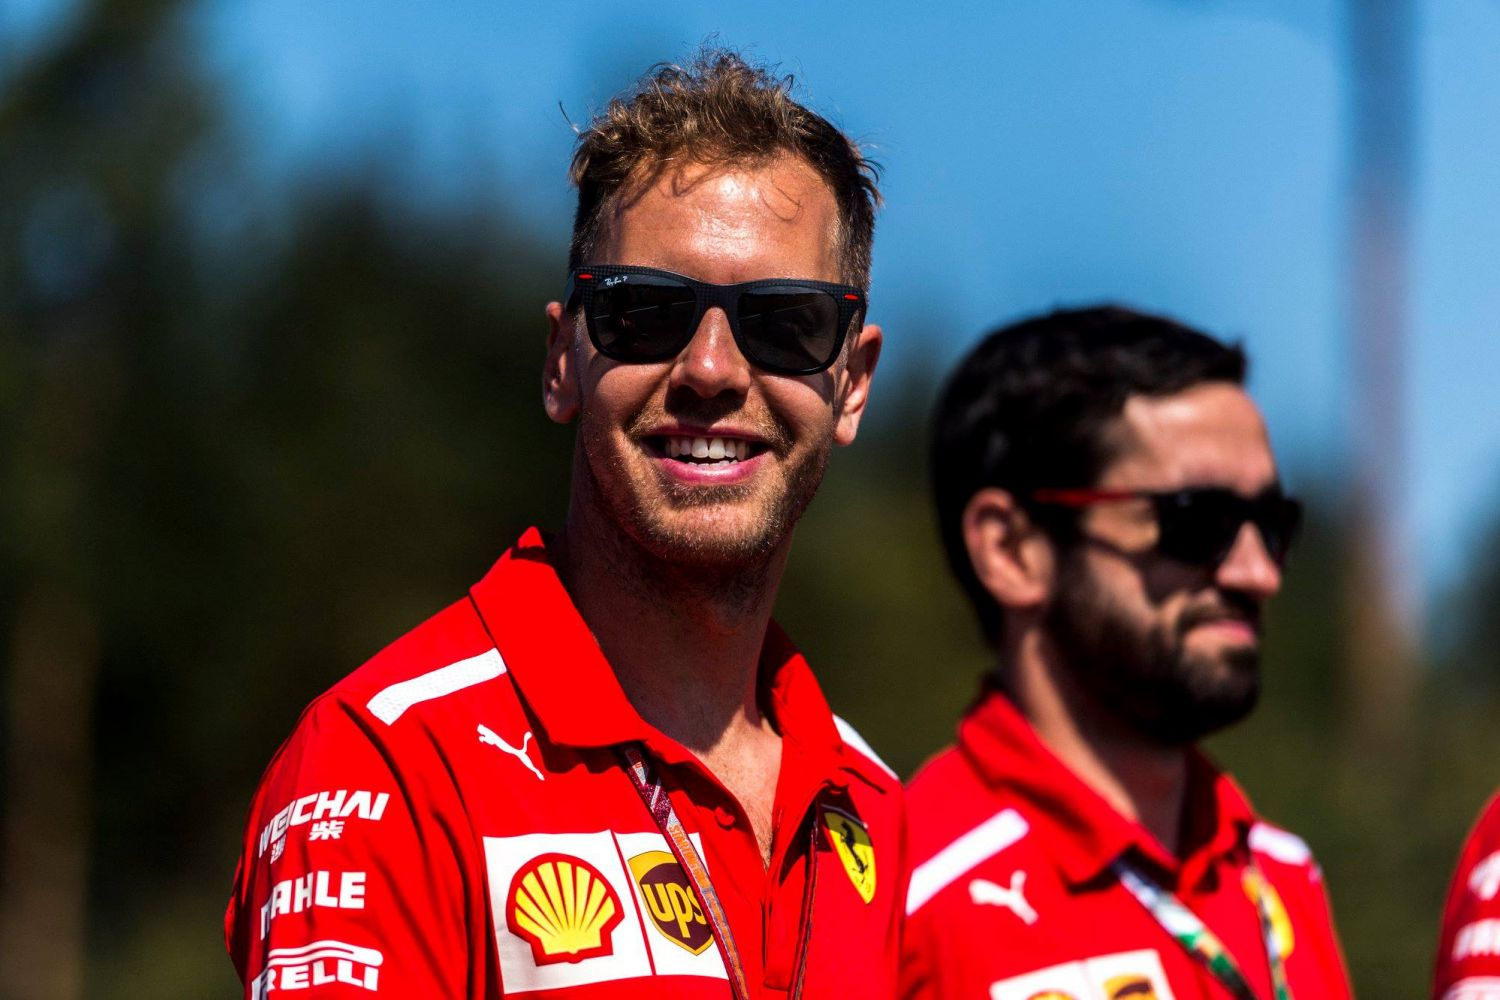 © Scuderia-Ferrari - Le pilote Allemand prend une option avant les qualifications